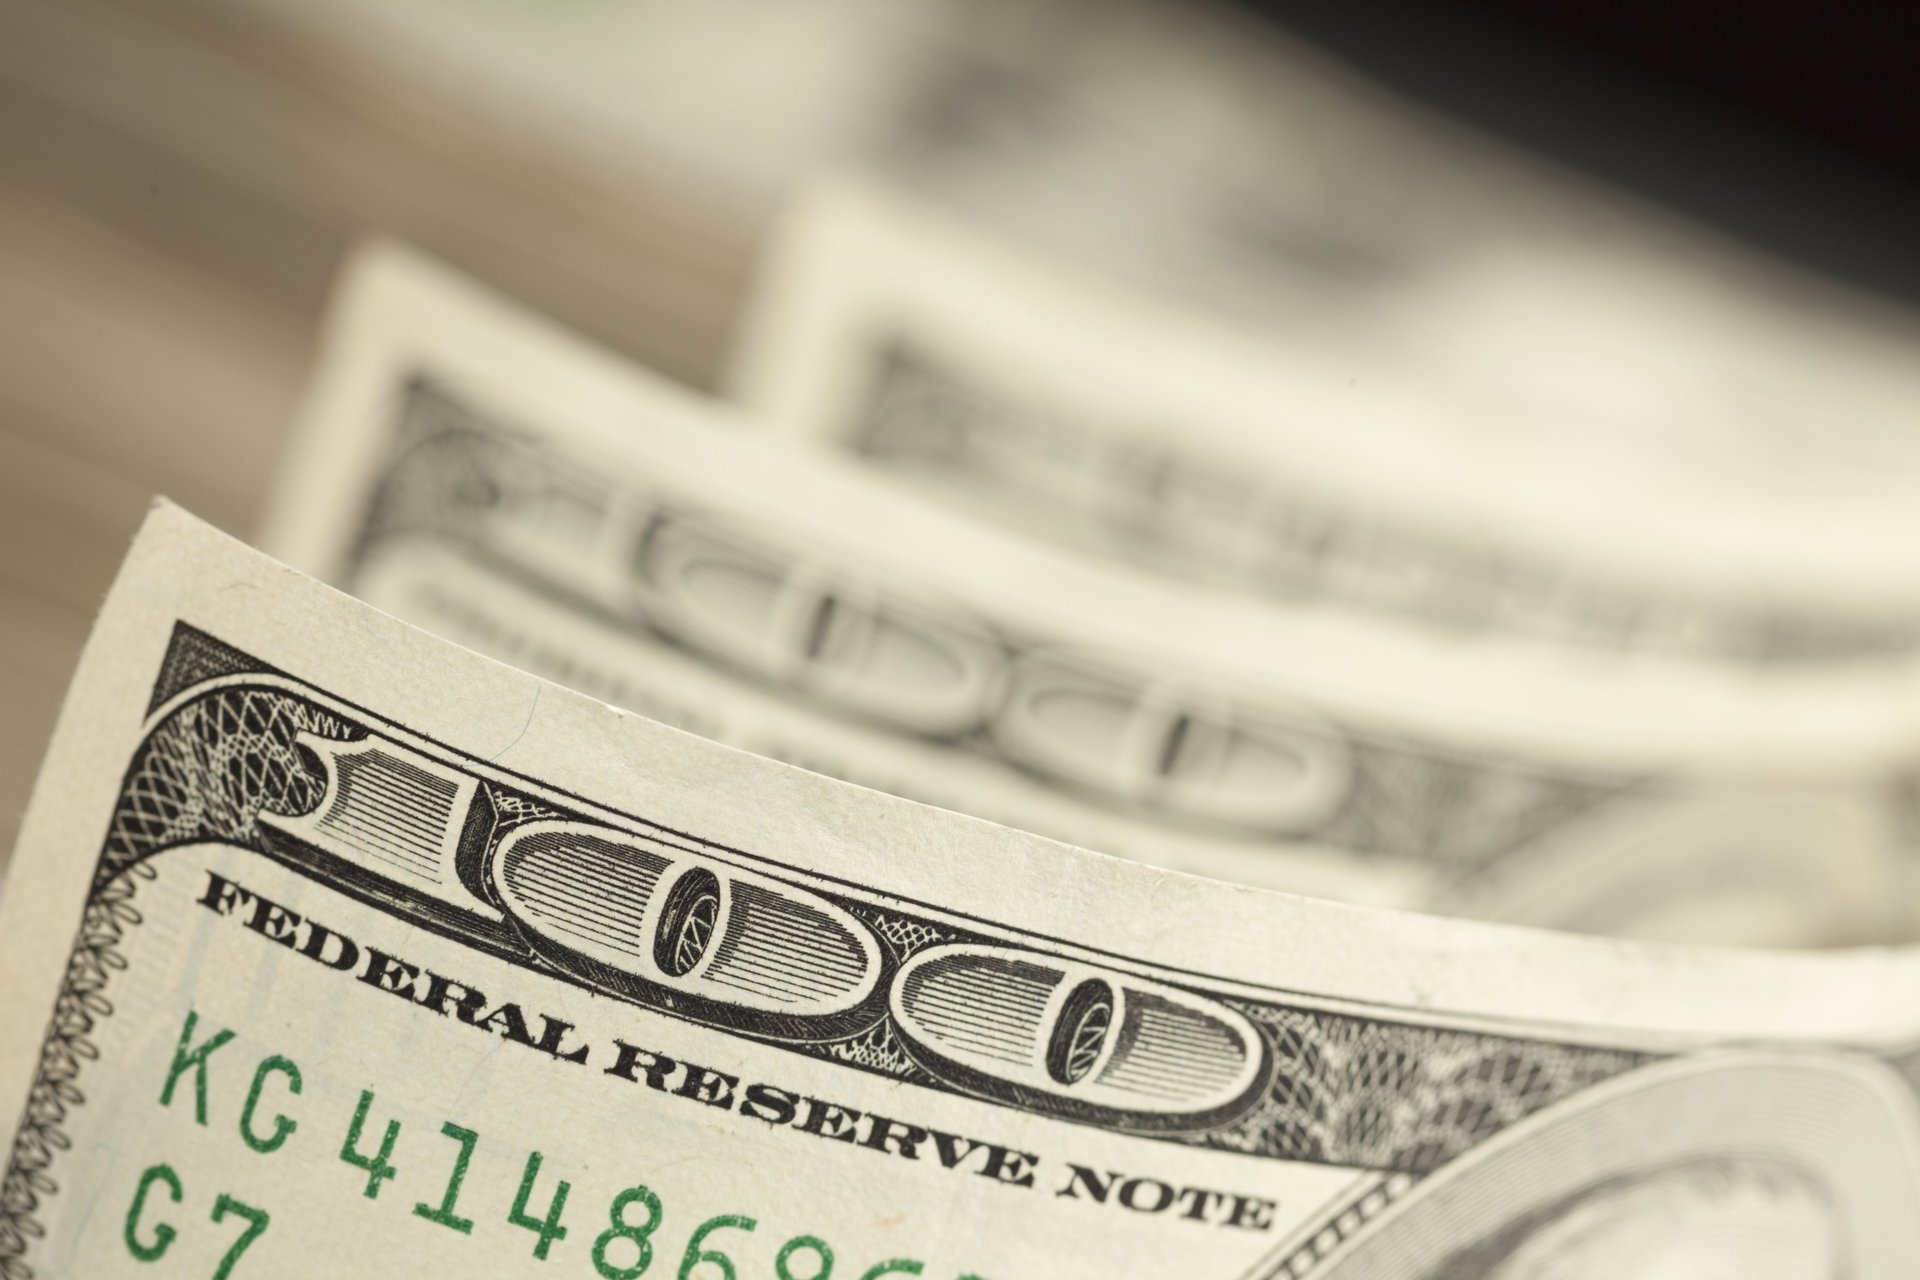 Cash Benefits from Workers' Compensation